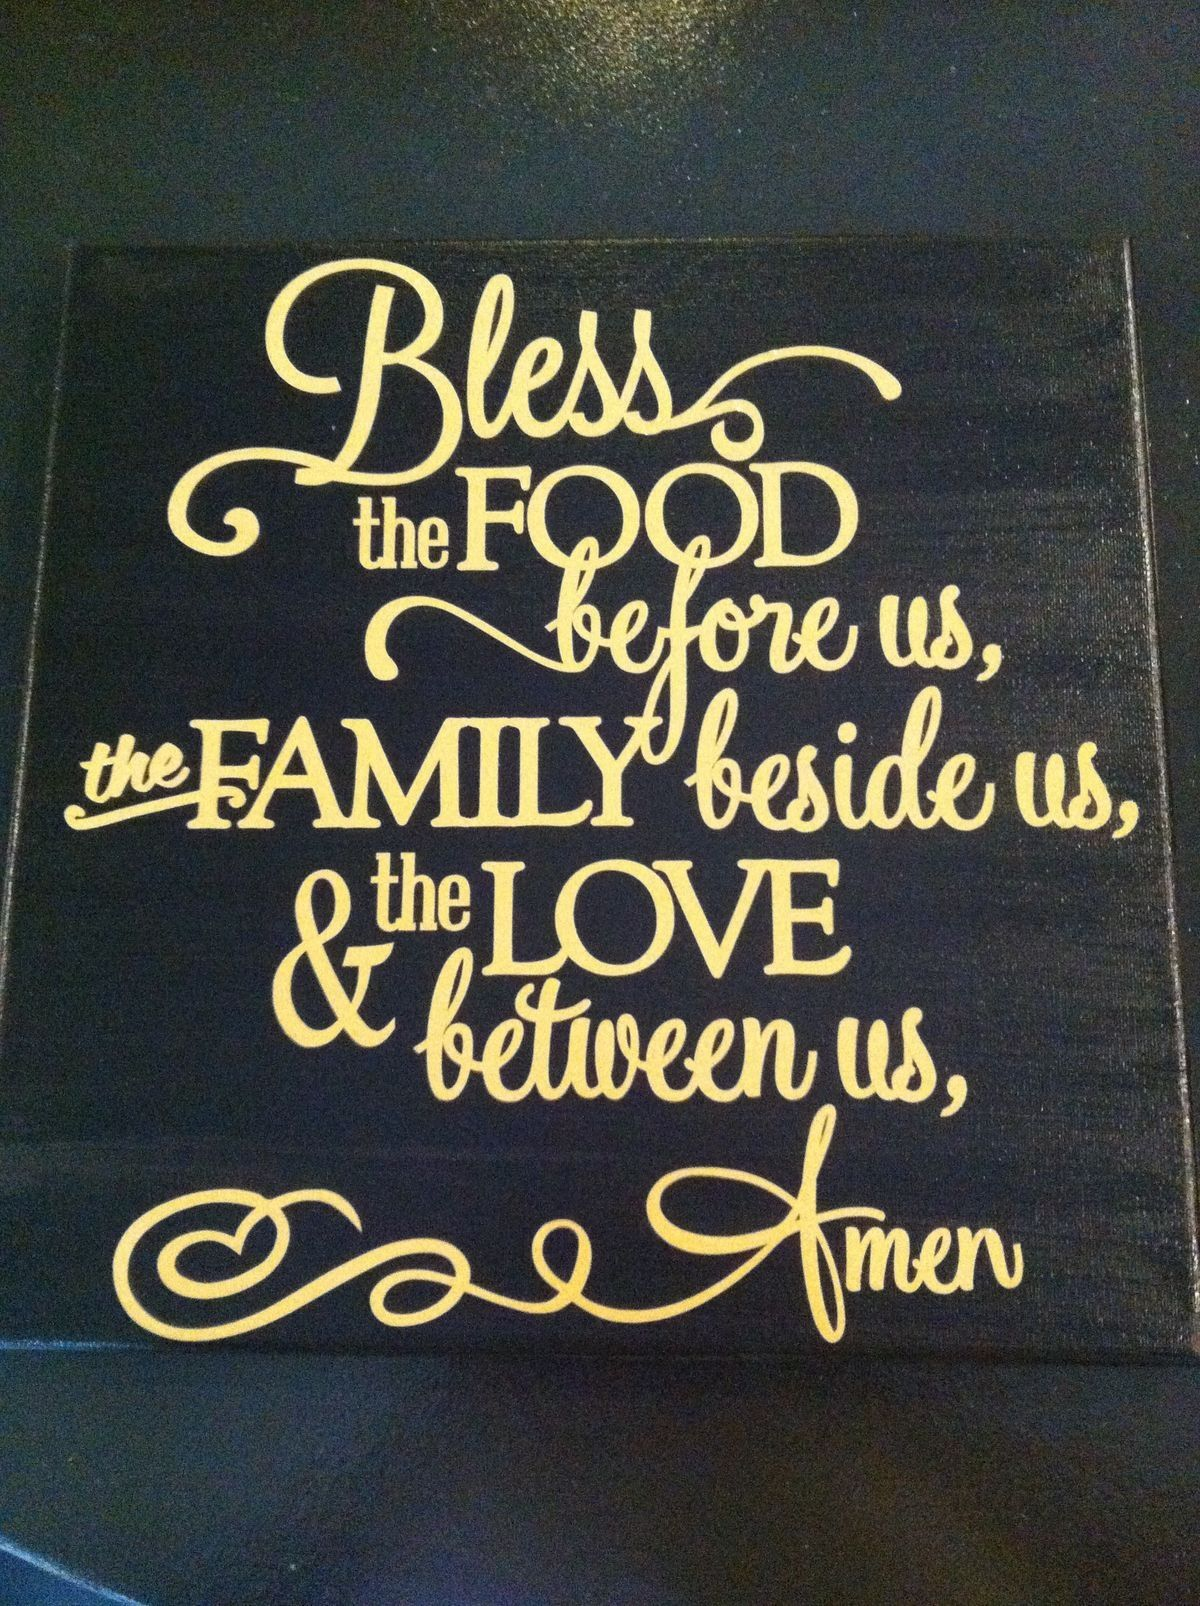 Pin by Lynnsie Fulkerson on Need 2 make! Family reunion